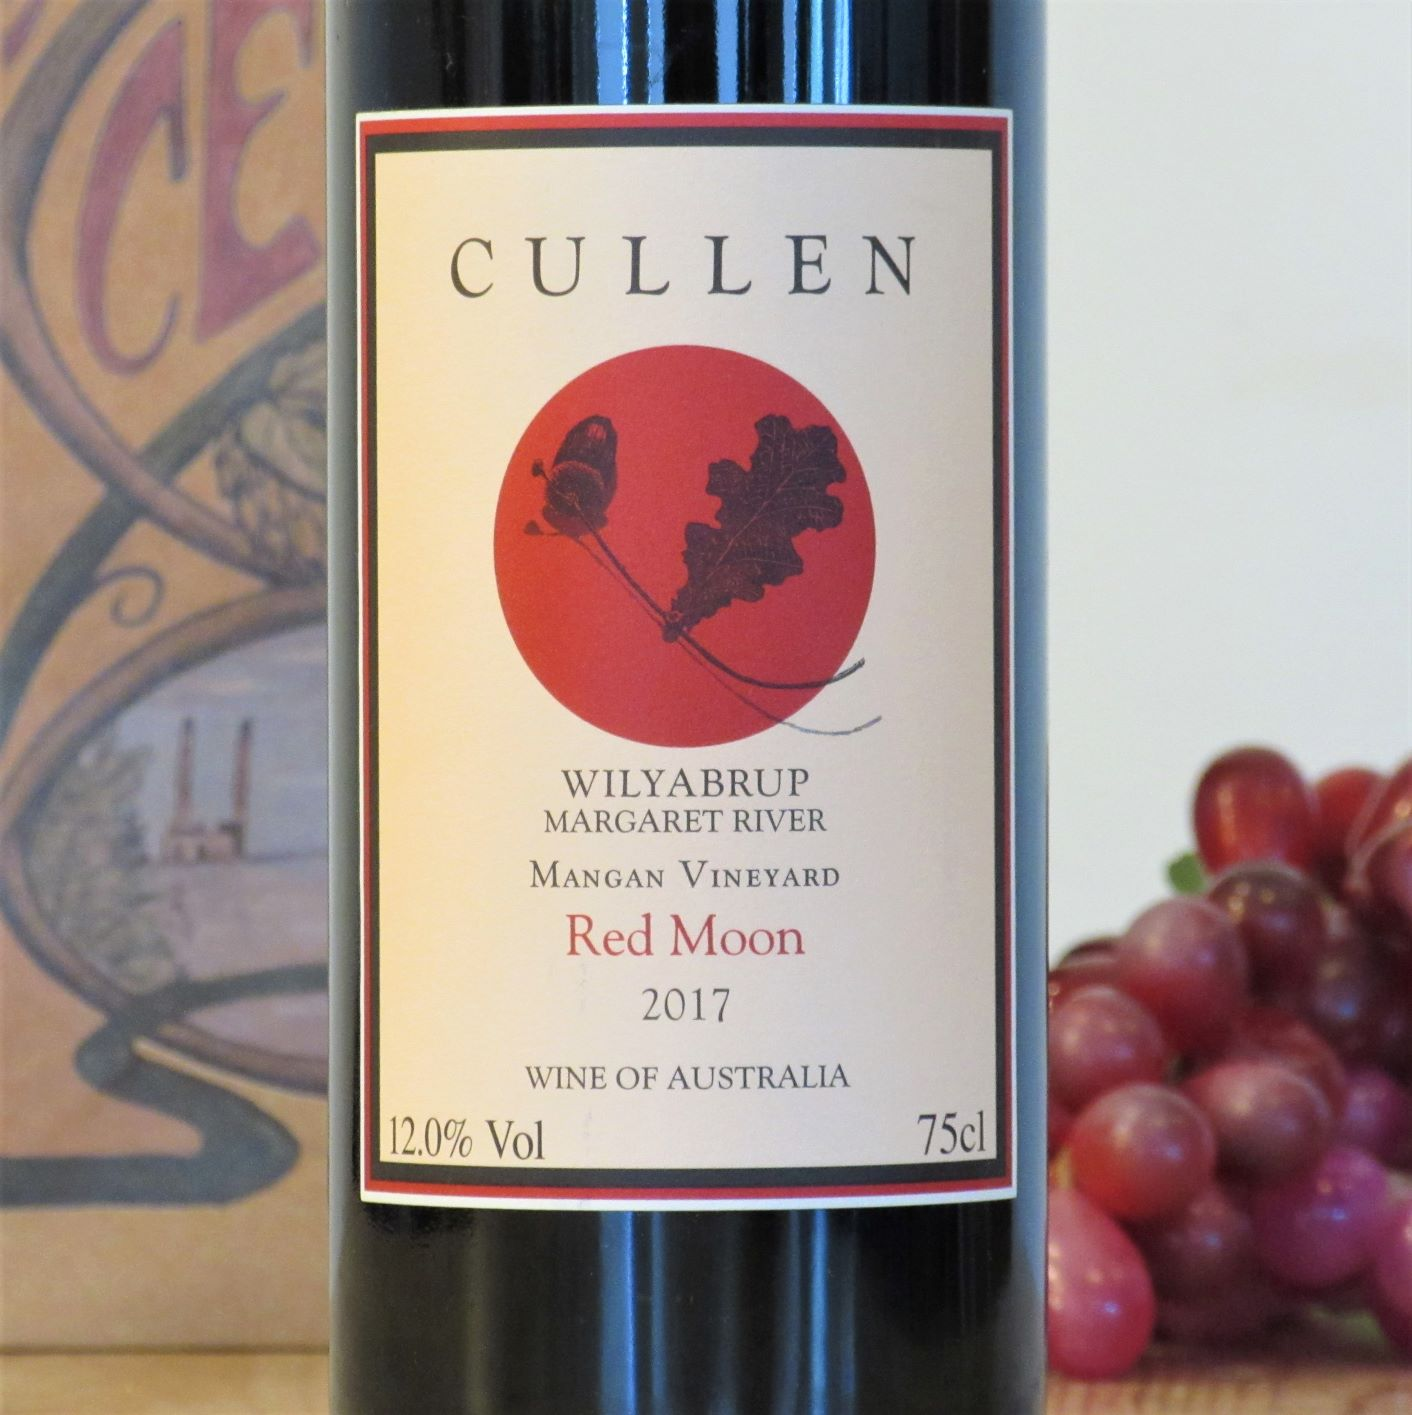 Cullen `Red Moon` Mangan Vineyard Wilyabrup